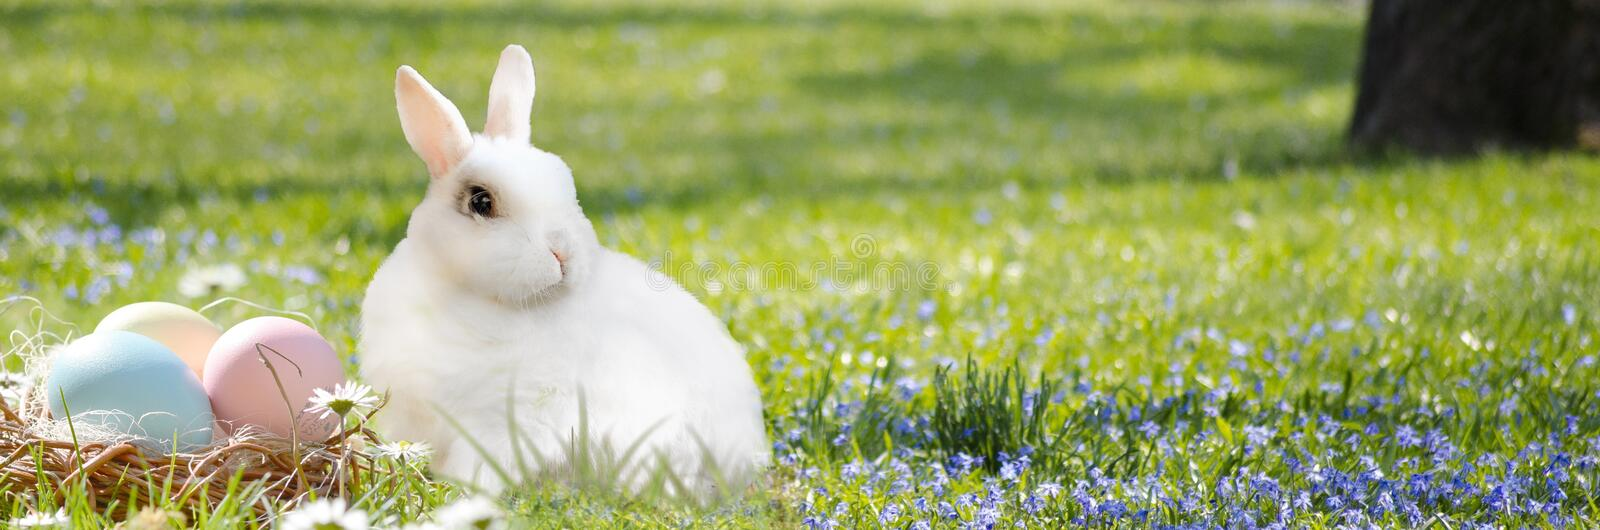 Mammal, Grass, Rabbit, Rabits And Hares stock photography